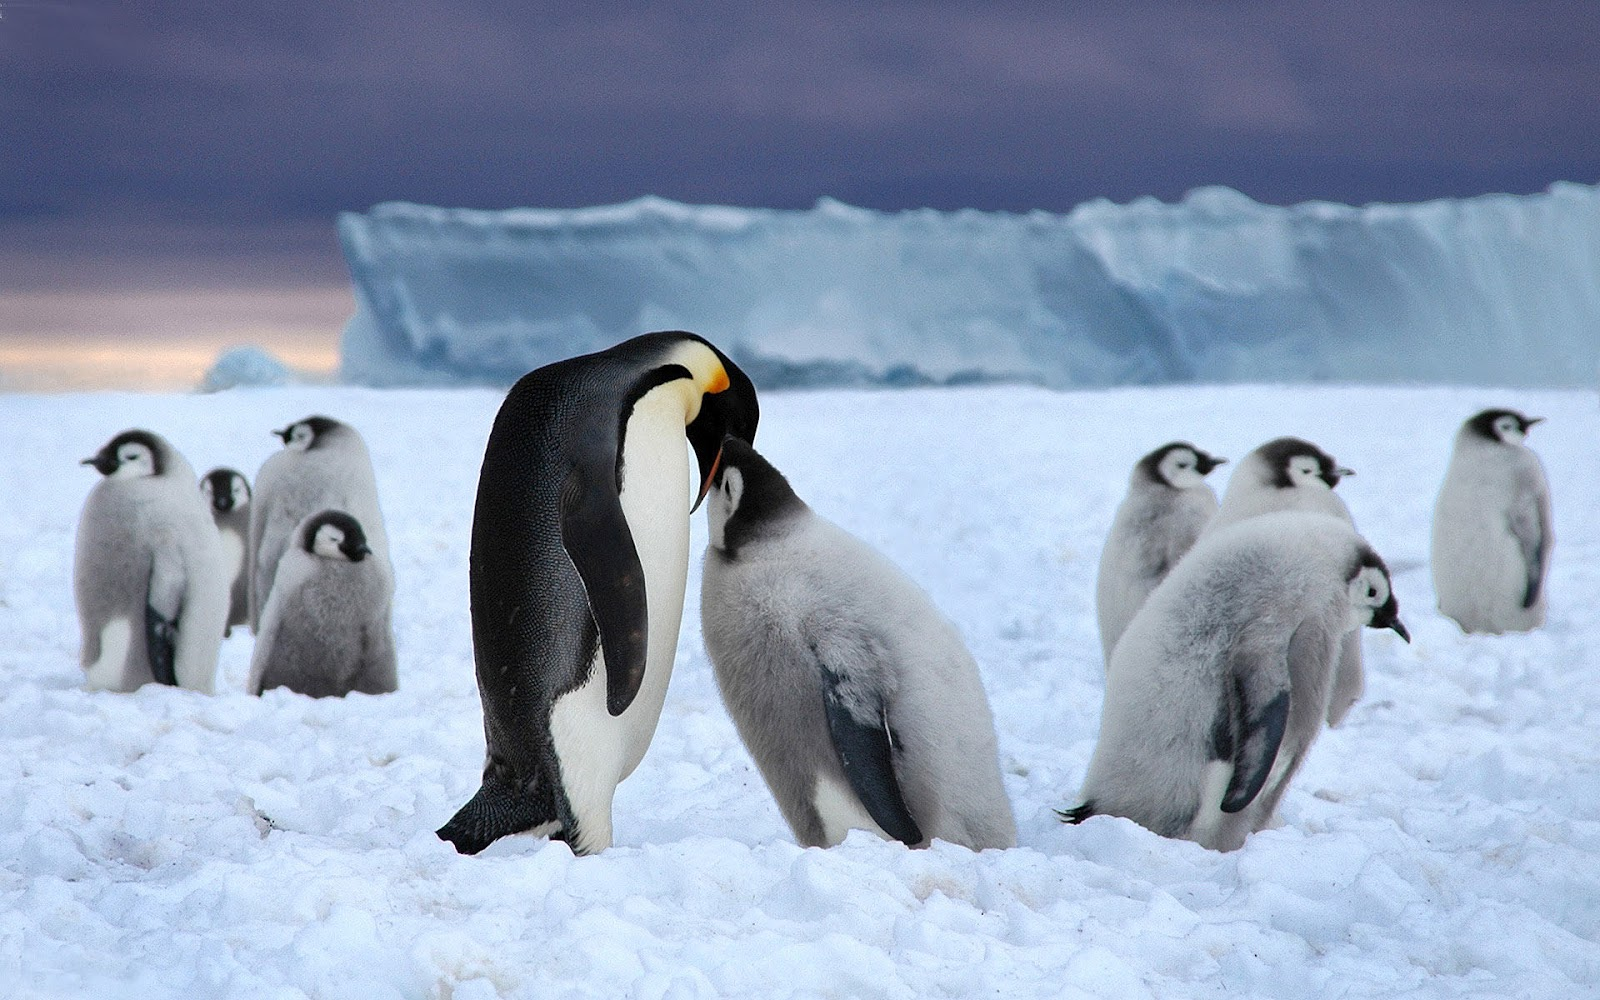 http://2.bp.blogspot.com/-WPNwU_h9YCM/UDkSoNsQDBI/AAAAAAAABIE/8sX5-KdVOqE/s1600/hd-penguin-wallpaper-with-father-or-mother-penguin-feeding-his-young-wallpapers-backgrounds-pictures-penguins-photos.jpg